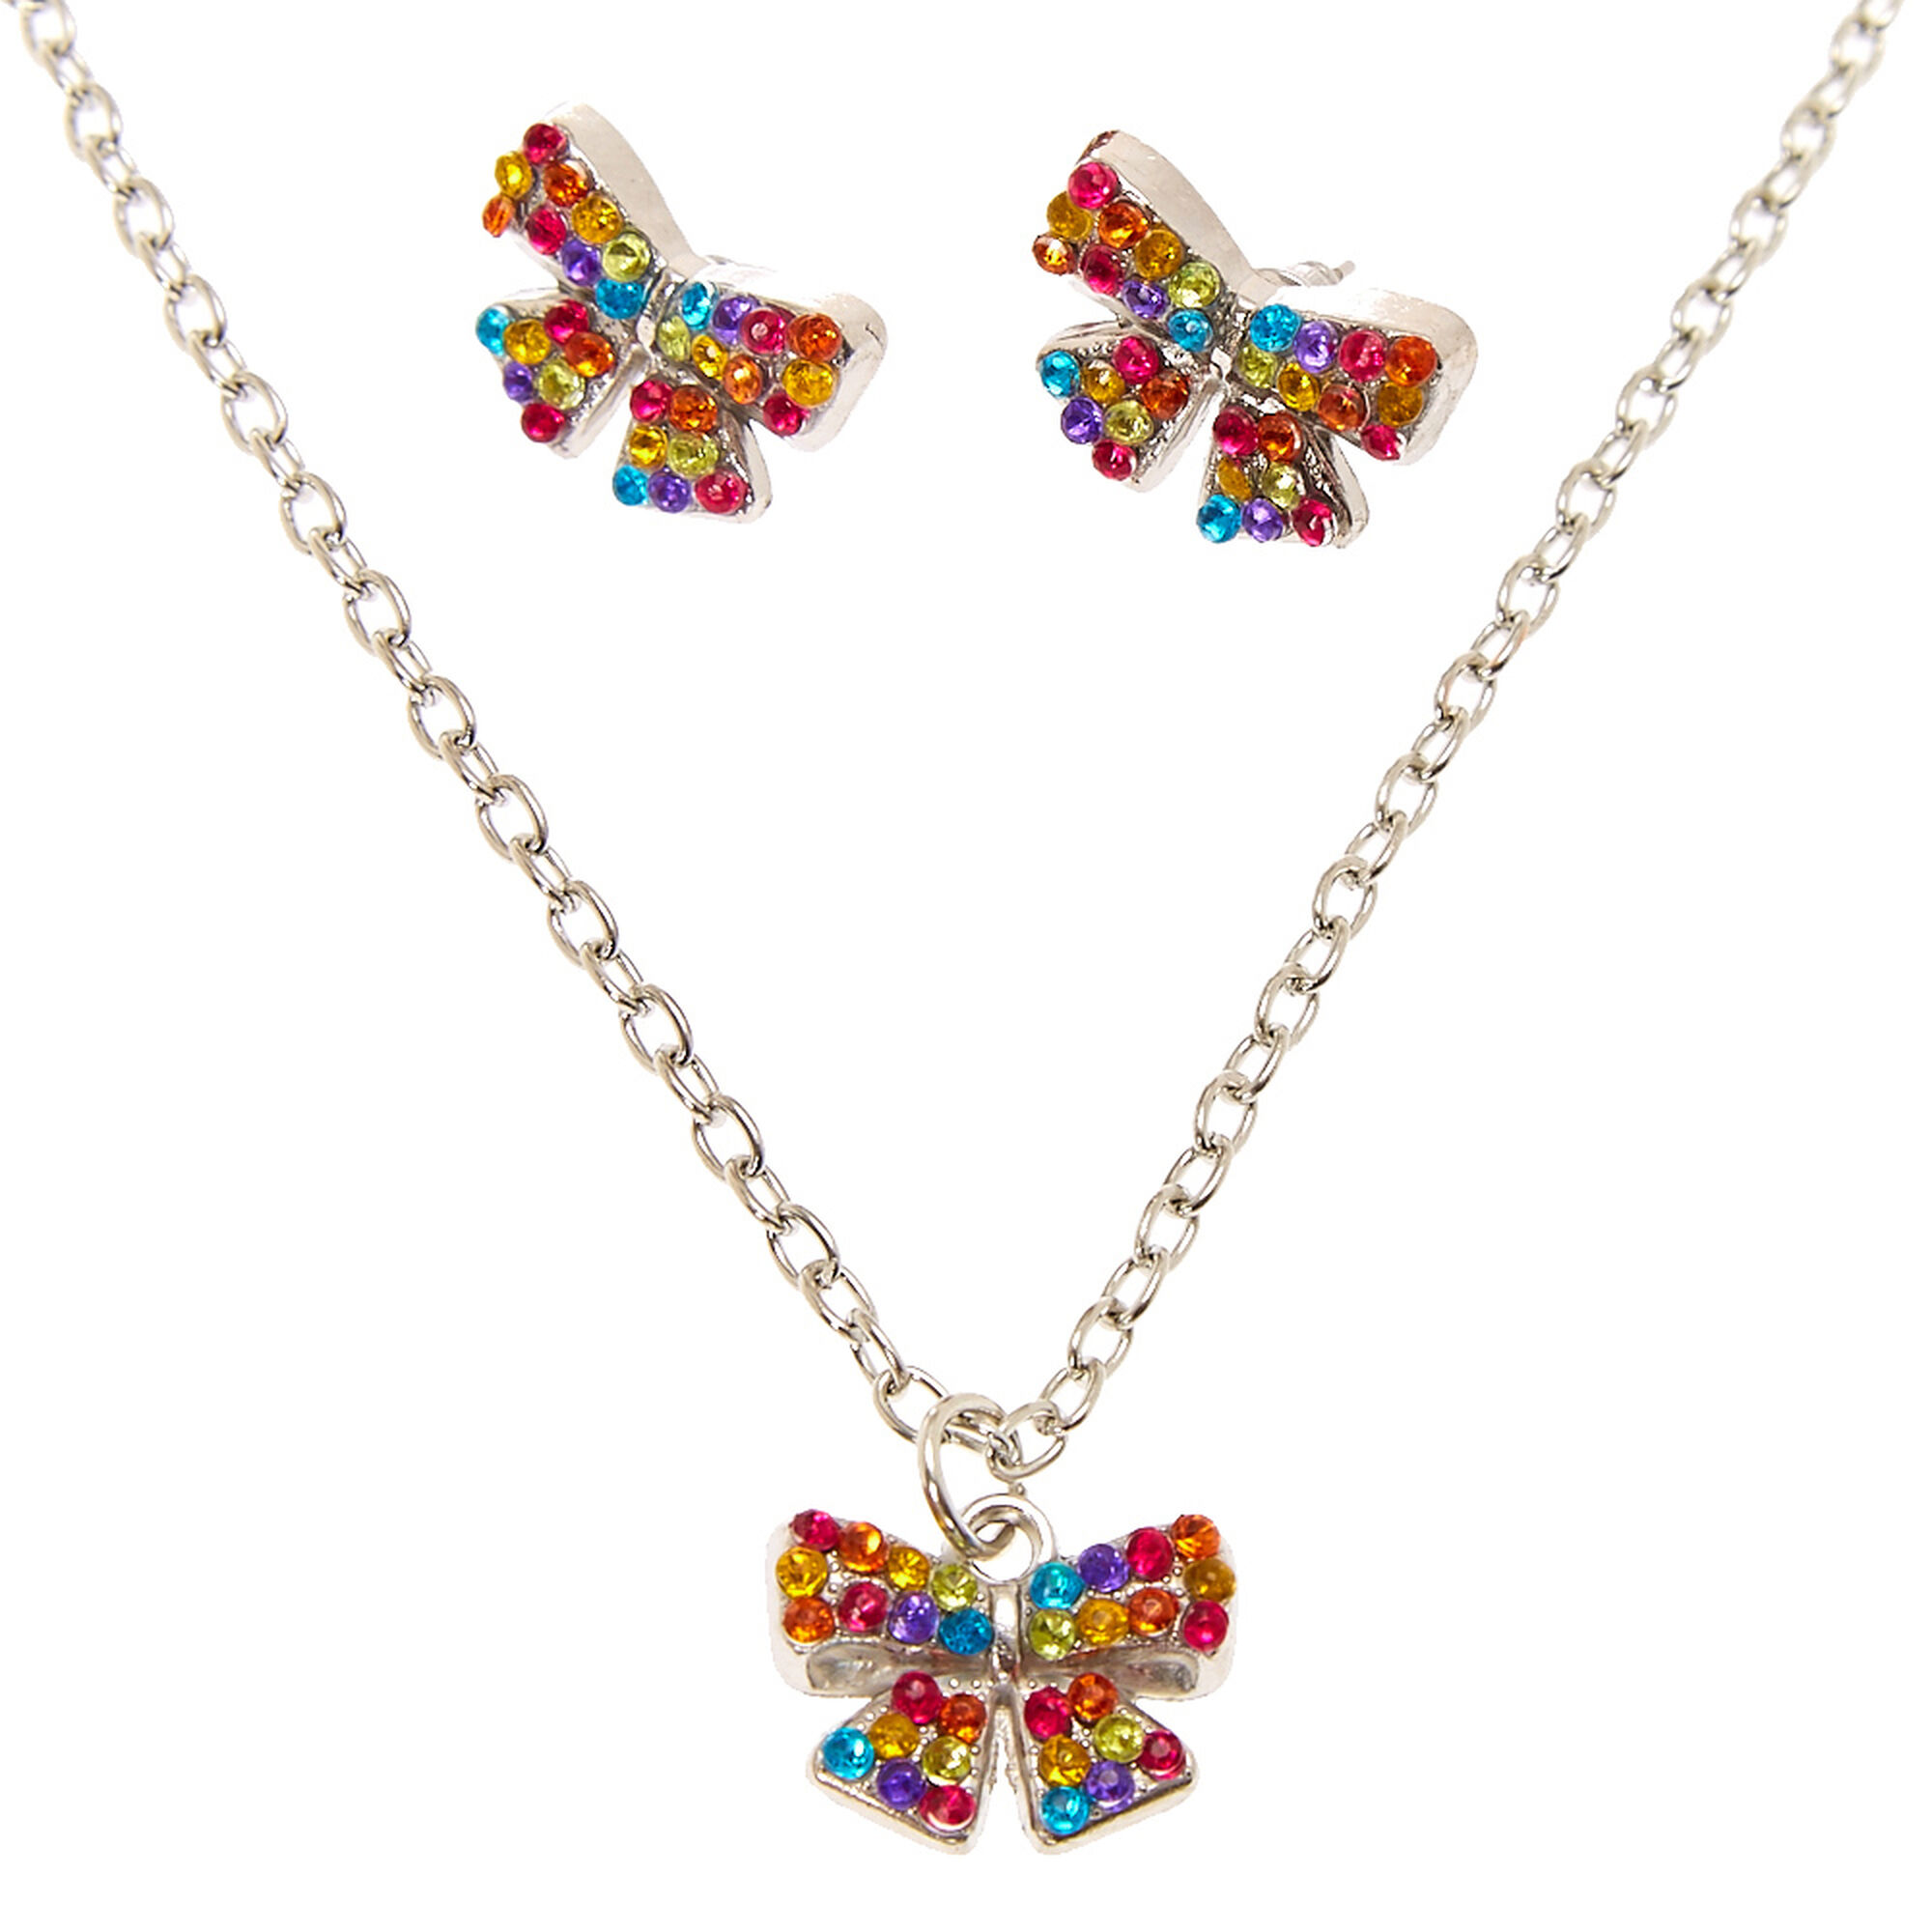 Find all of the trendy and affordable Claire's jewelry you love online at terpiderca.ga Whether you're looking for earrings and necklaces, purses and handbags, or even stylish hair accessories, you'll find beautiful and fashionable jewelry for girls from grade school to college at Claire's.